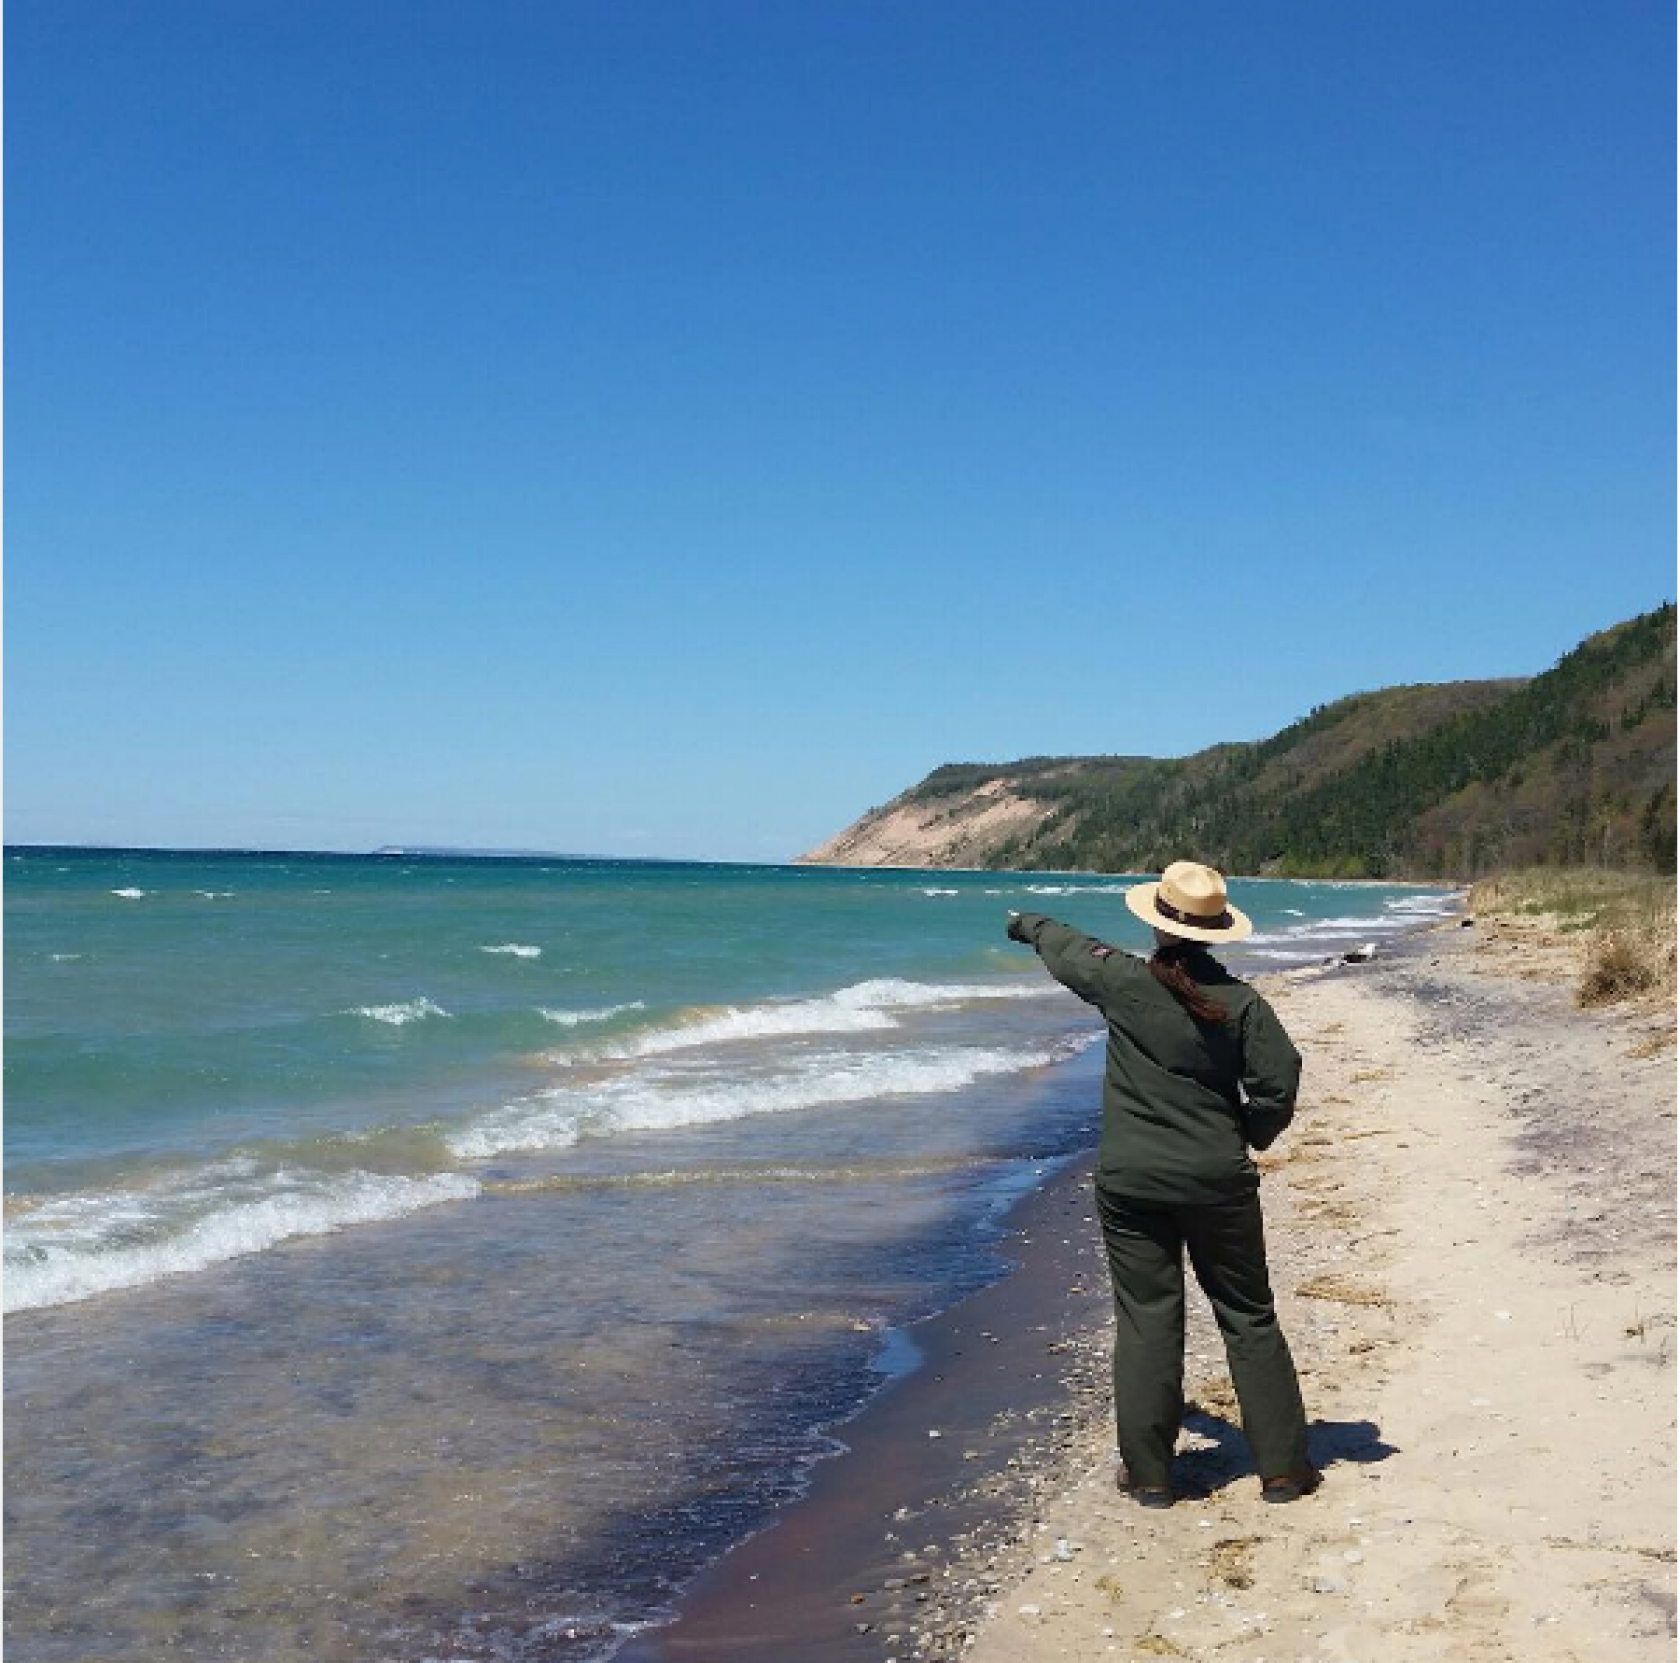 Park Ranger pointing at the shores of Lake Michigan and dunes at Sleeping Bear National Park